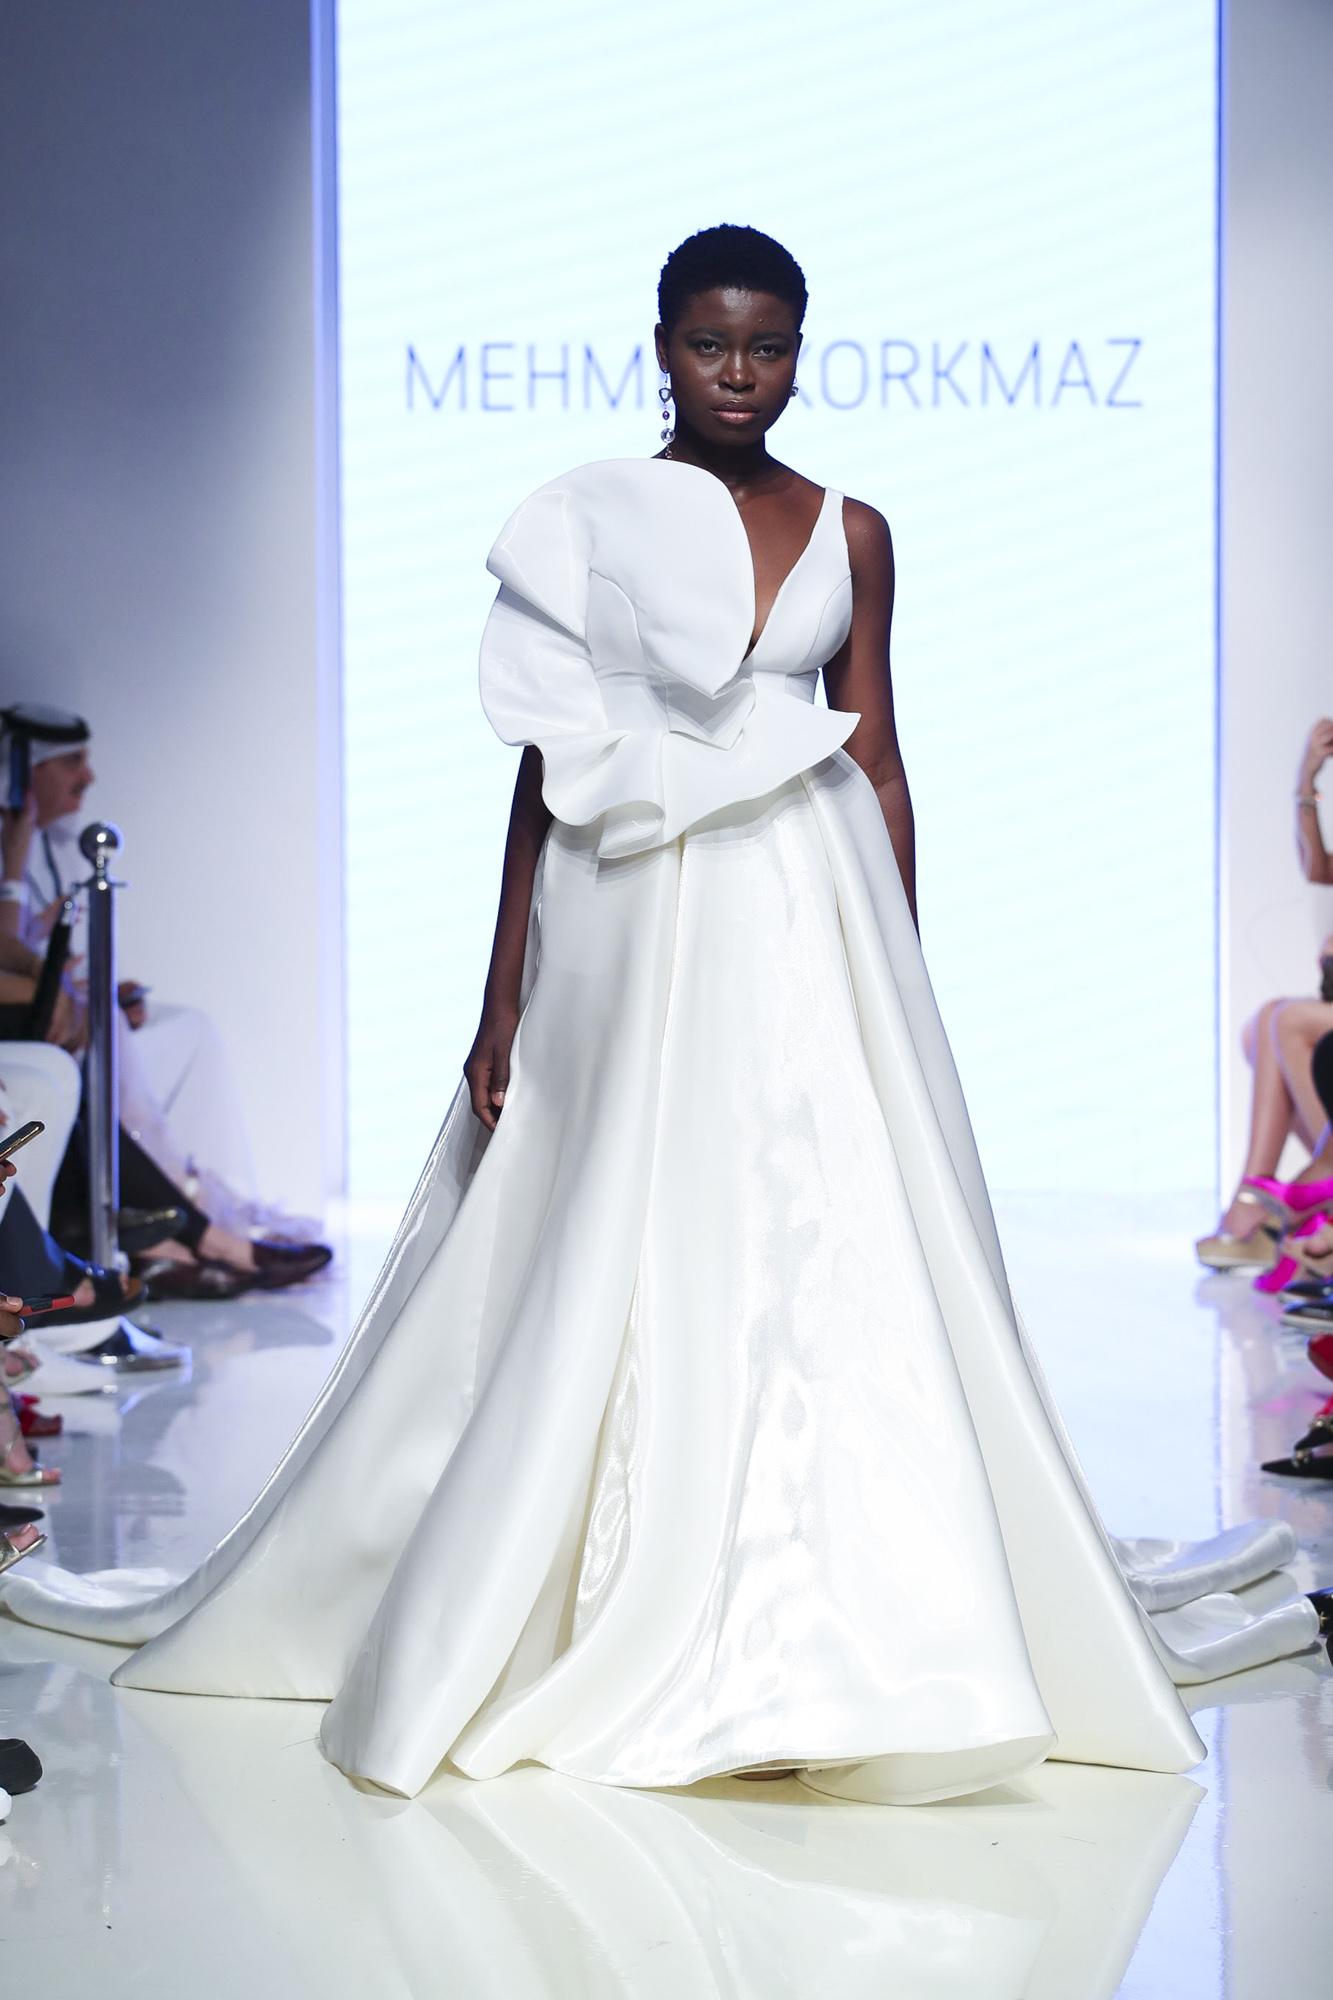 Mehmet Korkmaz fashion show, Arab Fashion Week collection Spring Summer 2020 in Dubai